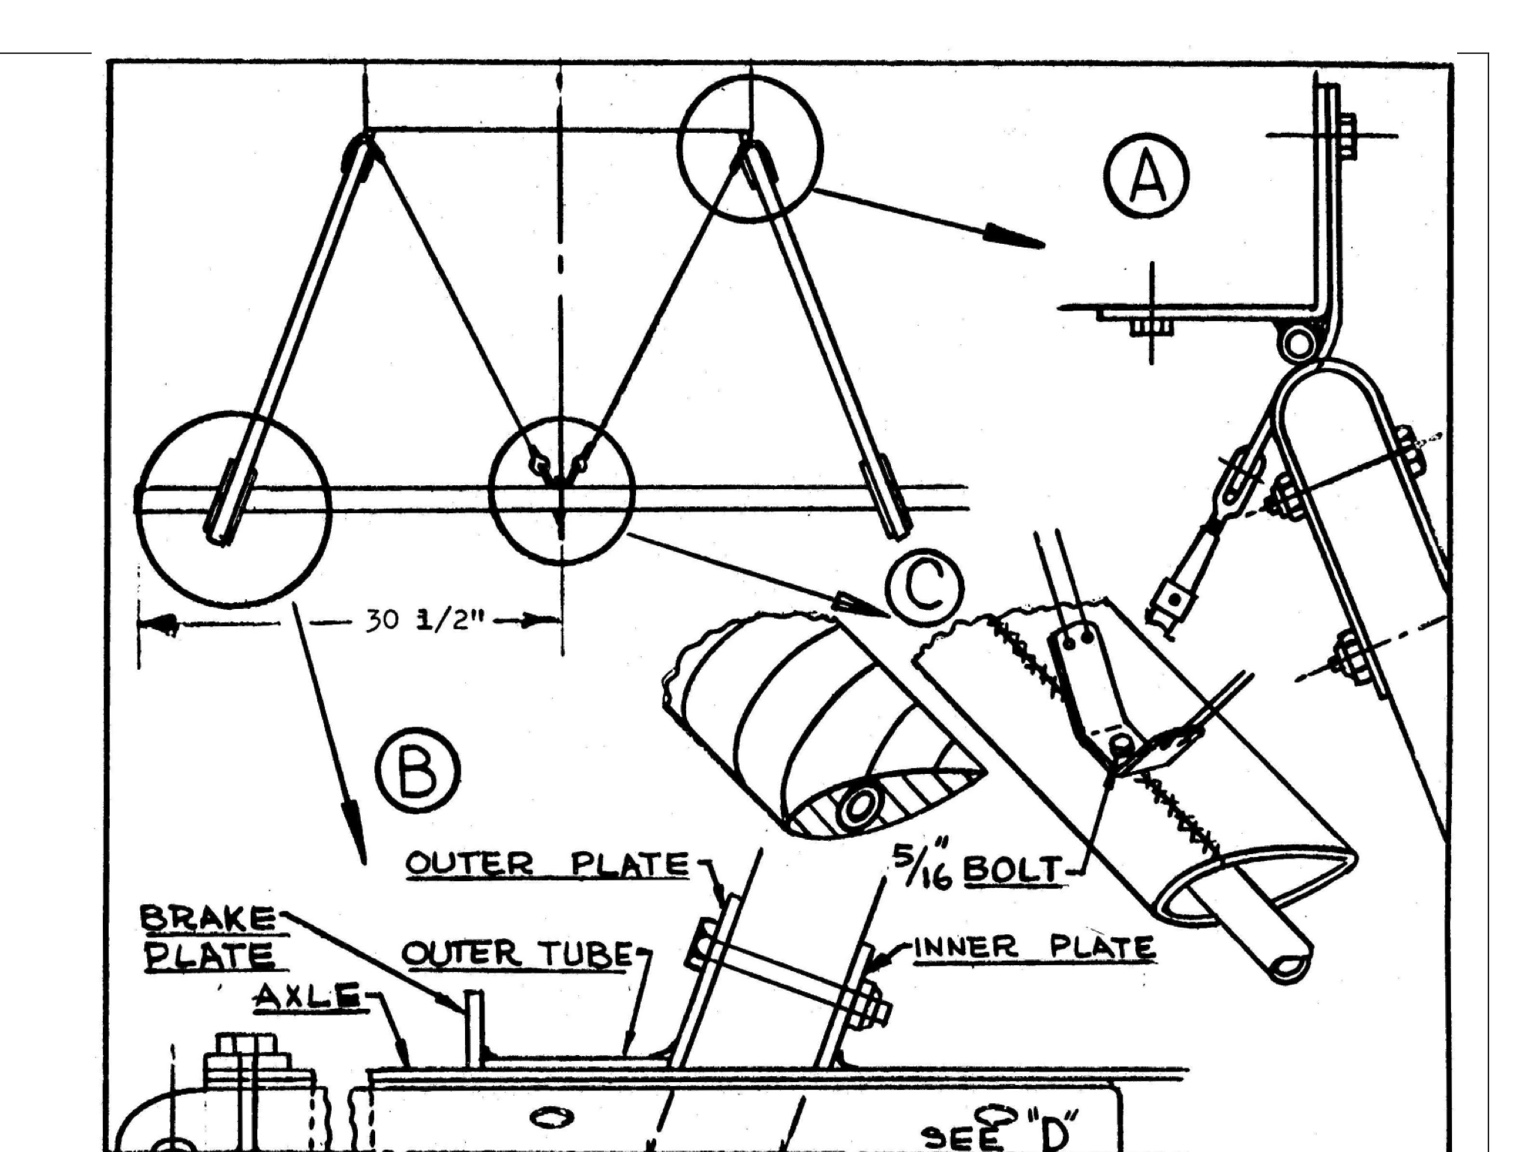 Colorful cessna 172 wiring diagram image collection wiring diagram mercruiser boat wiring 140 mercruiser wiring diagram